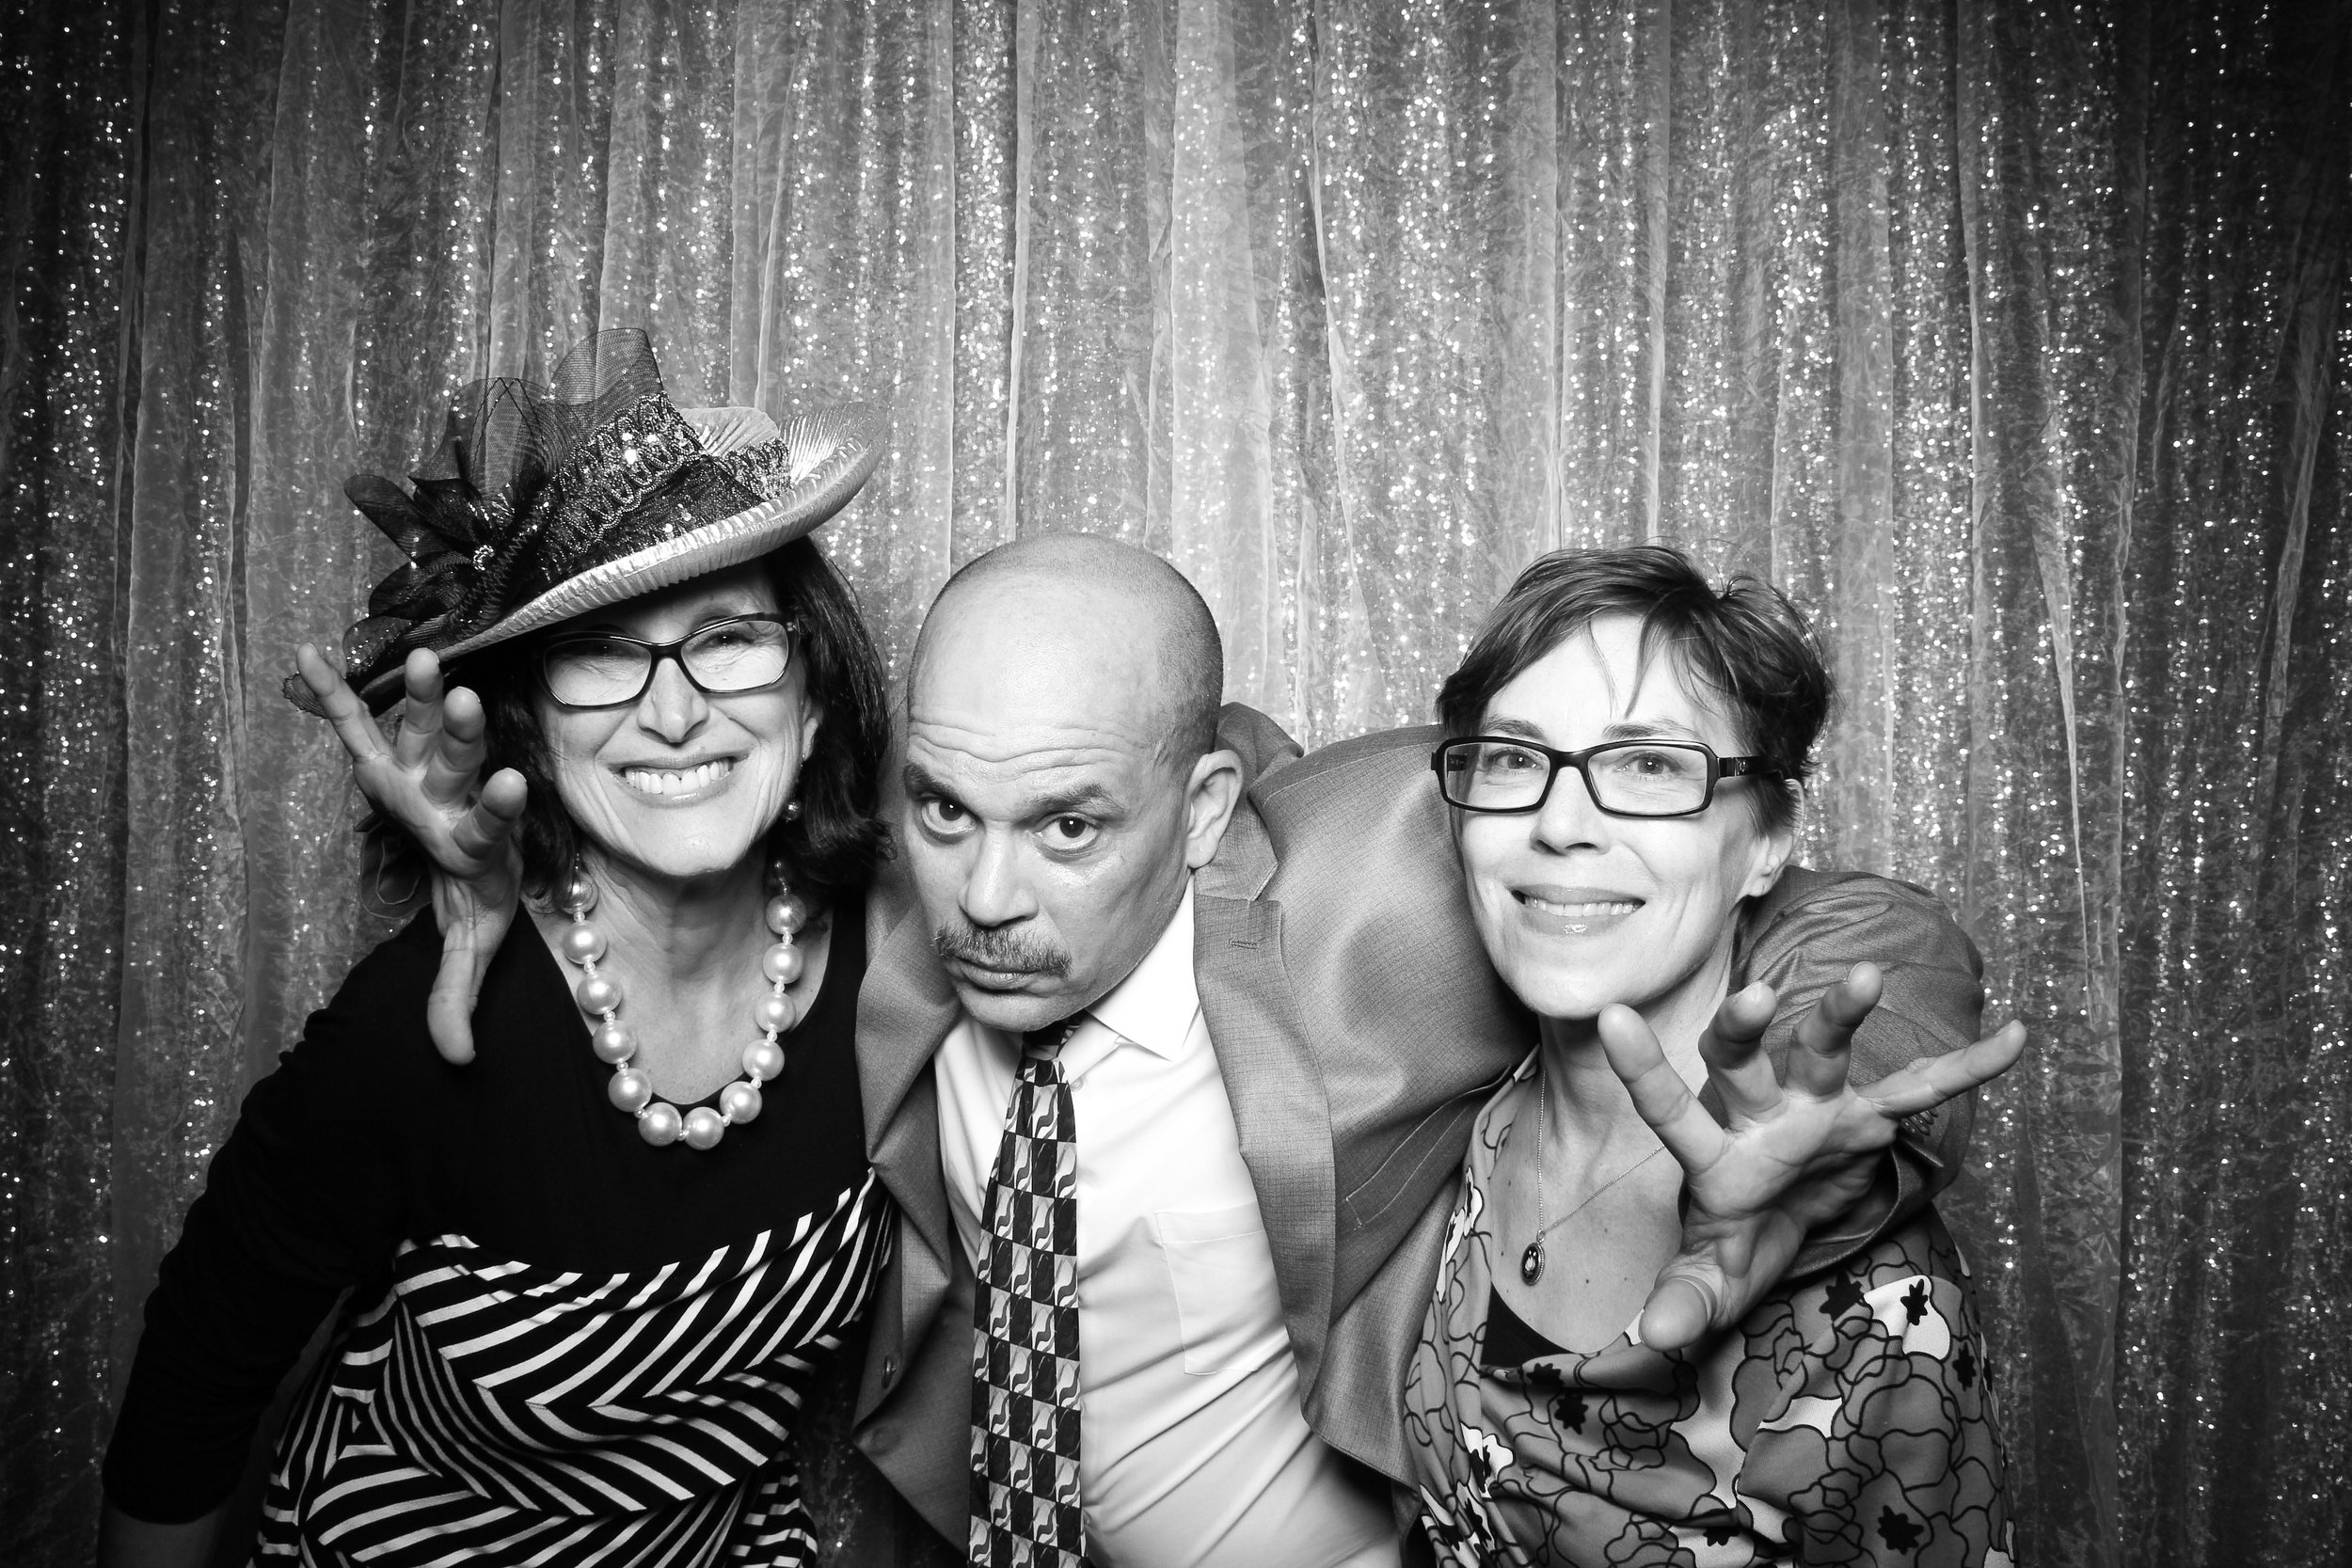 Chicago_Vintage_Wedding_Photobooth_Glen_Club_21.jpg